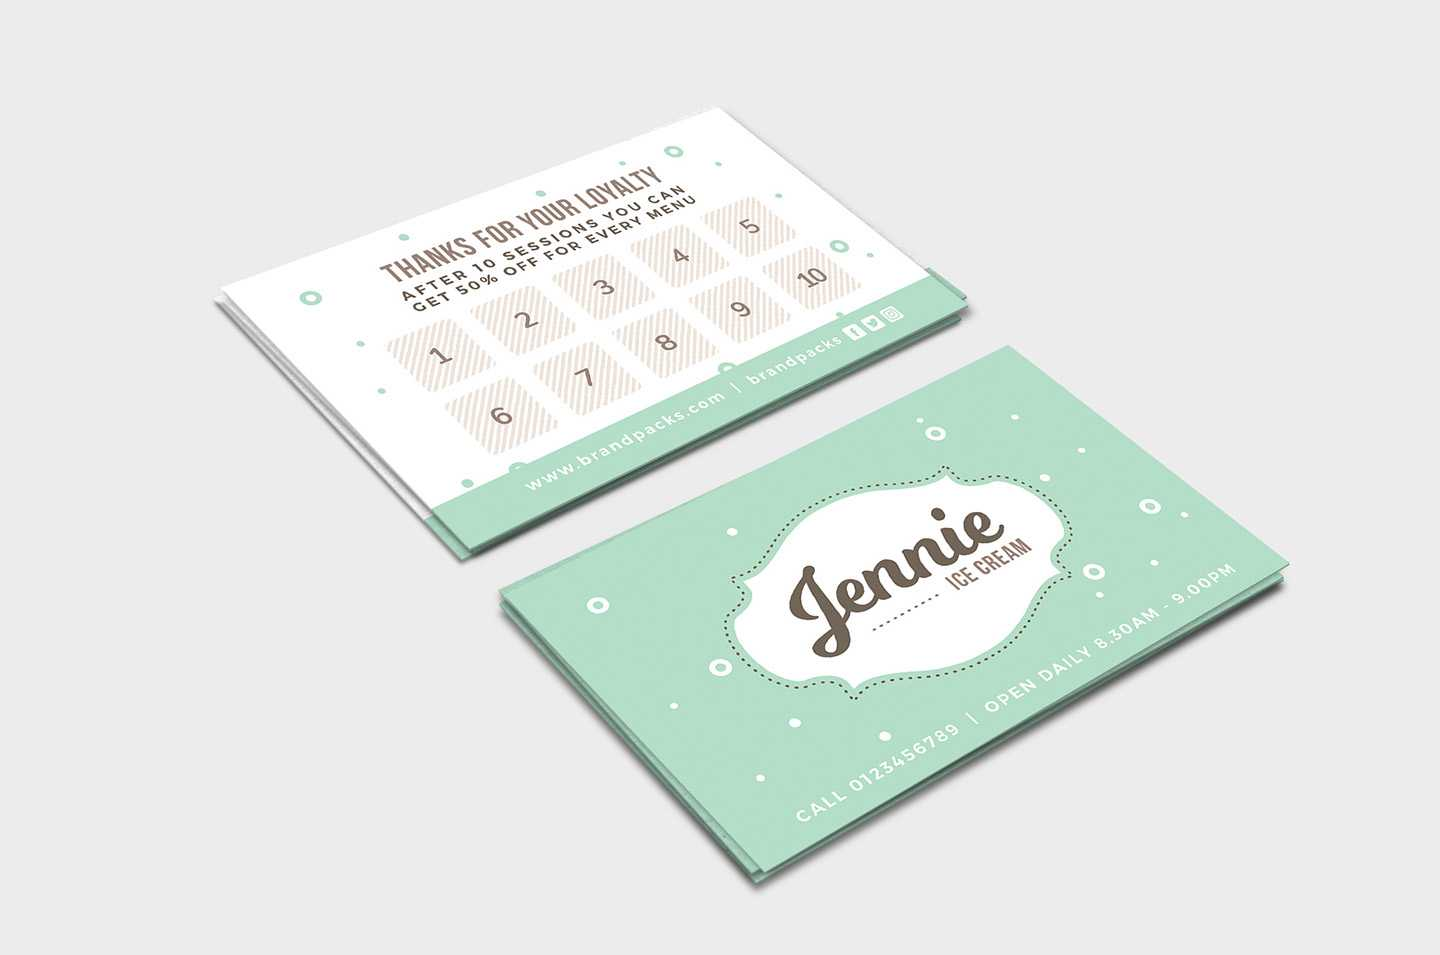 Free Loyalty Card Templates - Psd, Ai & Vector - Brandpacks Intended For Loyalty Card Design Template